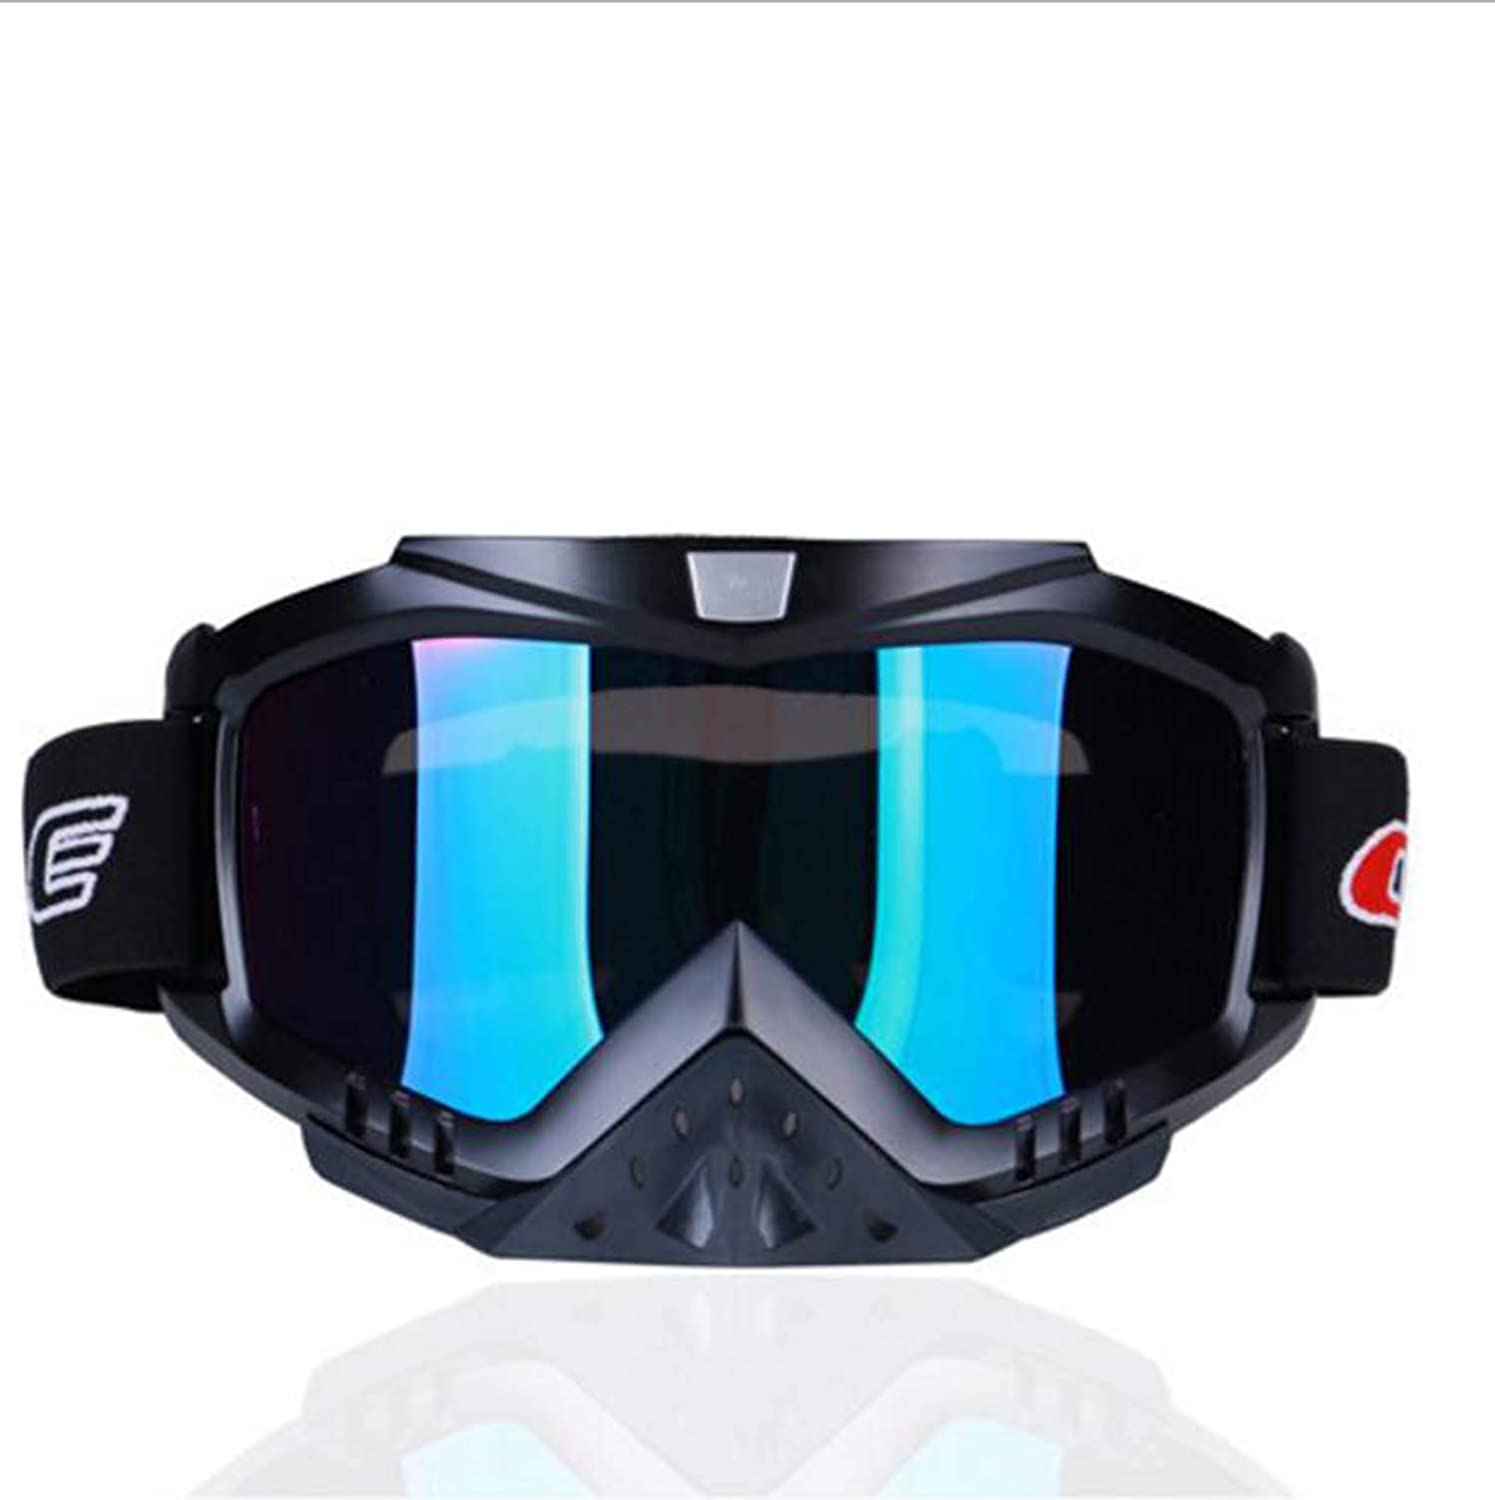 Goggles Motorcycle CrossCountry Goggles Outdoor Riding Ski Goggles Windproof Glasses Rider, Male, Lady, Adult